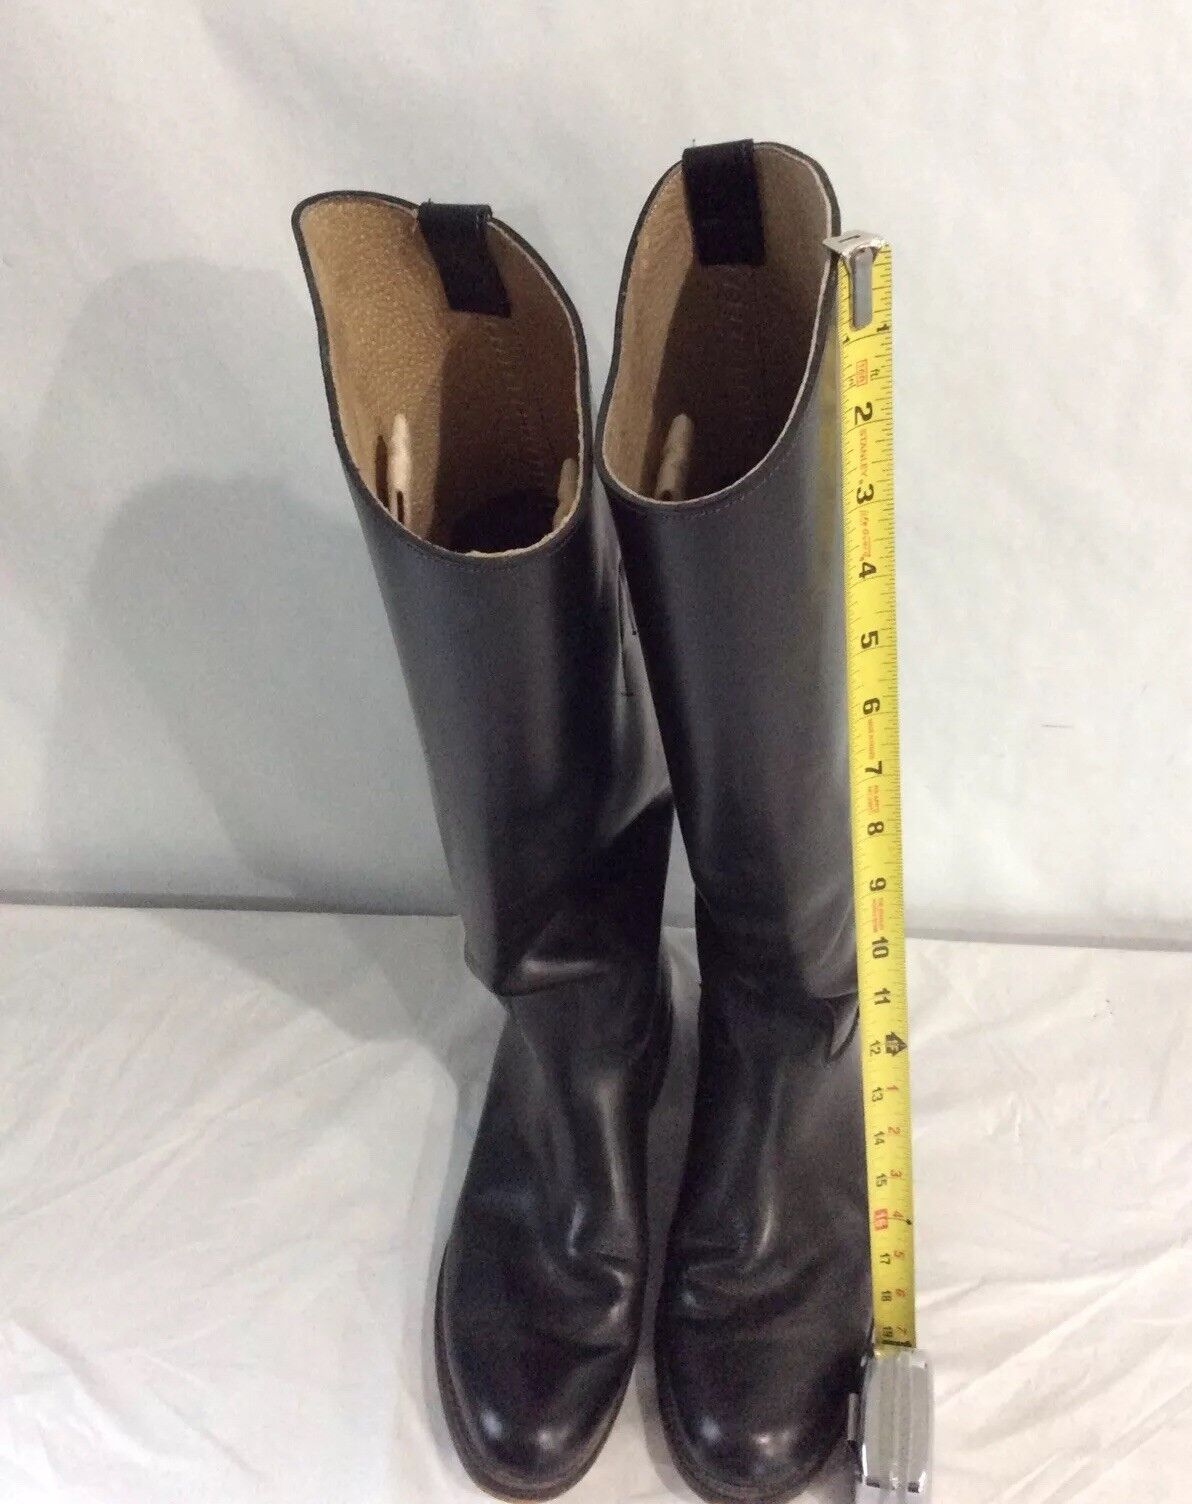 Biltrite Womens Size 8 1/2 Black Leather Riding Boots